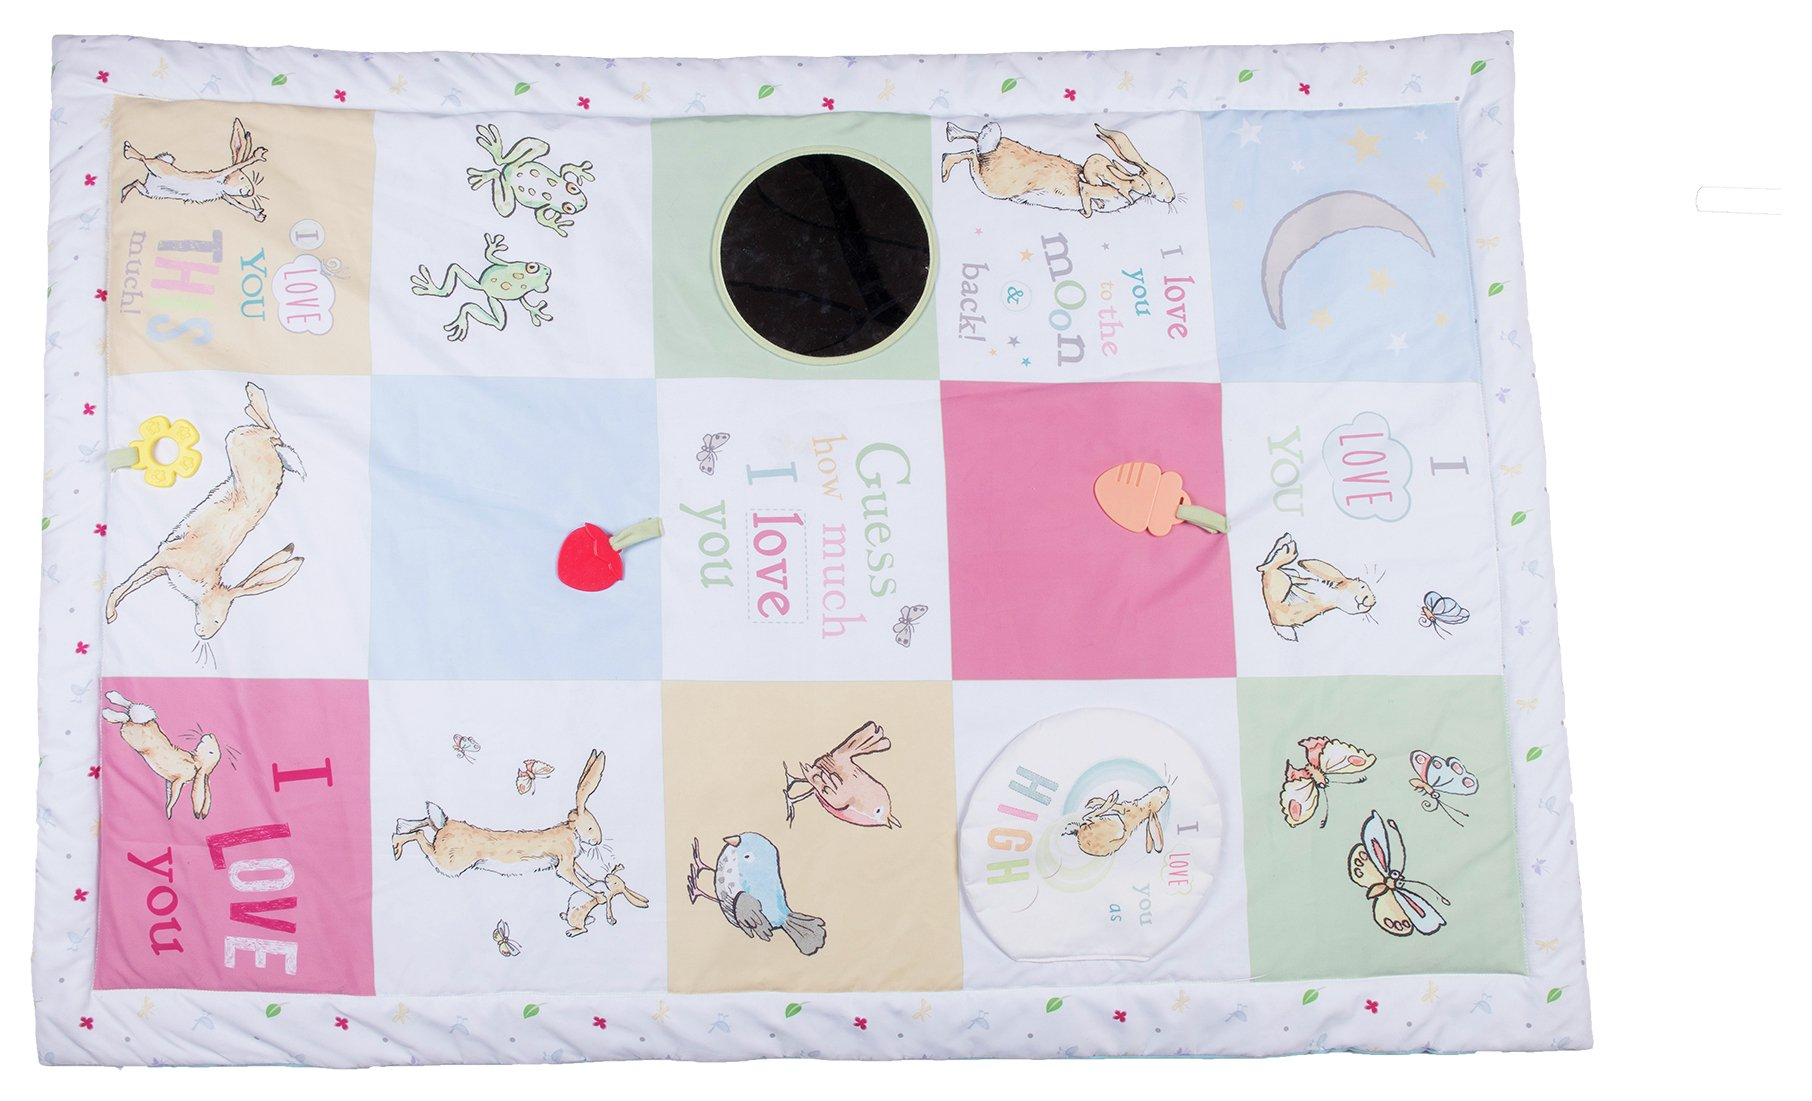 Image of Guess How Much I Love You Activity Playmat.